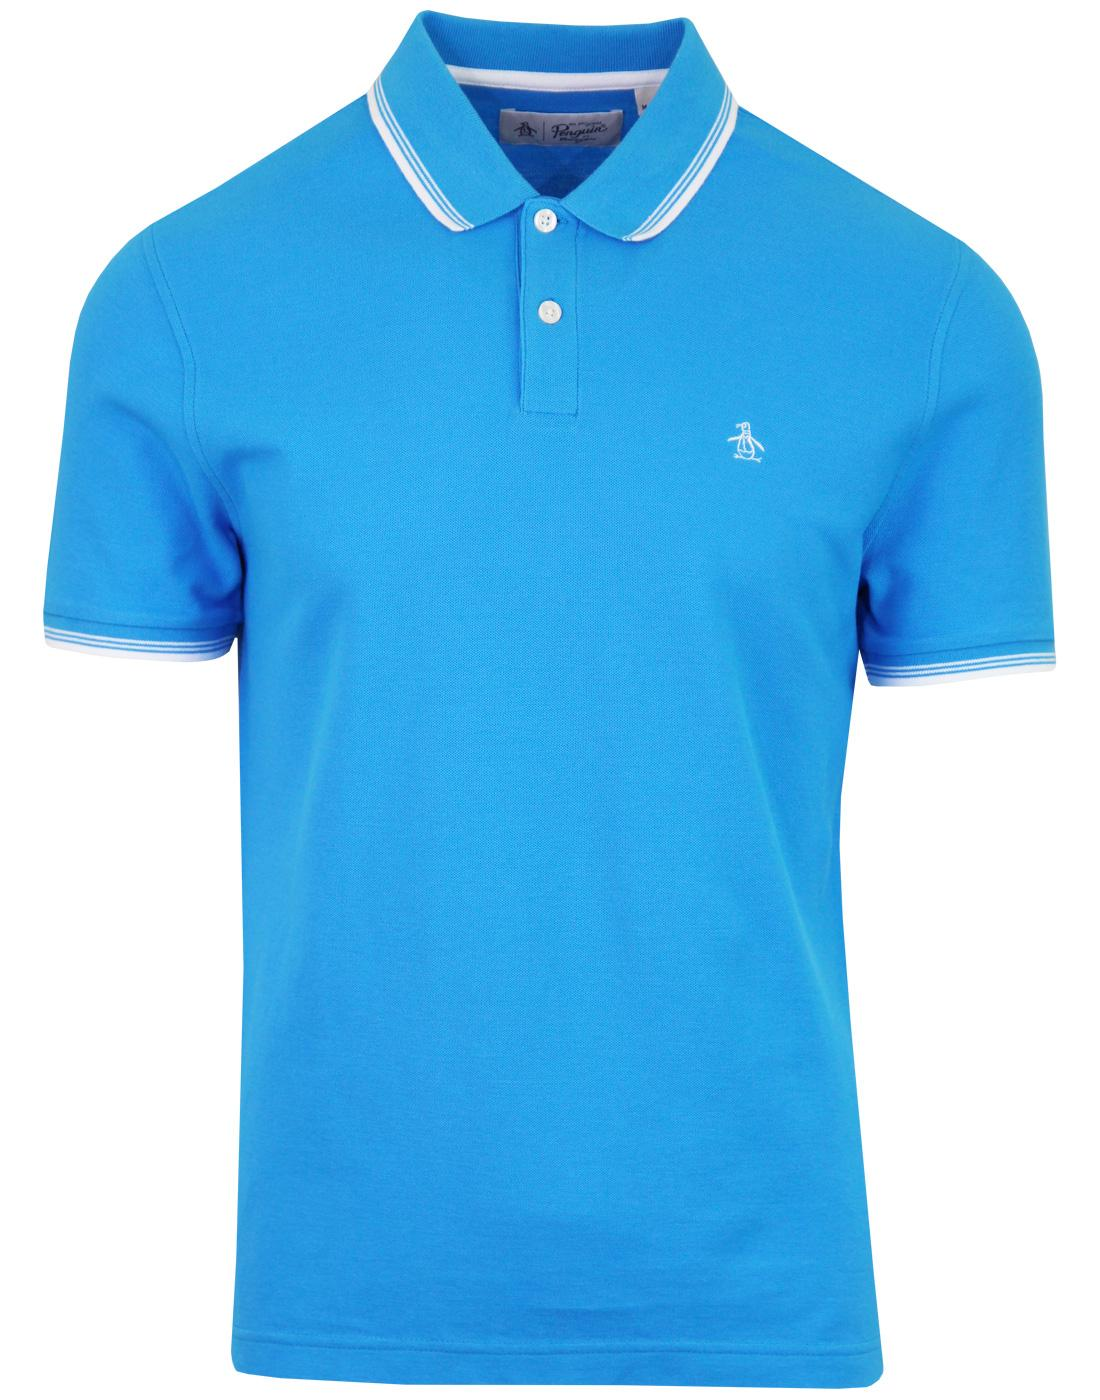 ORIGINAL PENGUIN 56 Retro Mod Tipped Polo Top BLUE